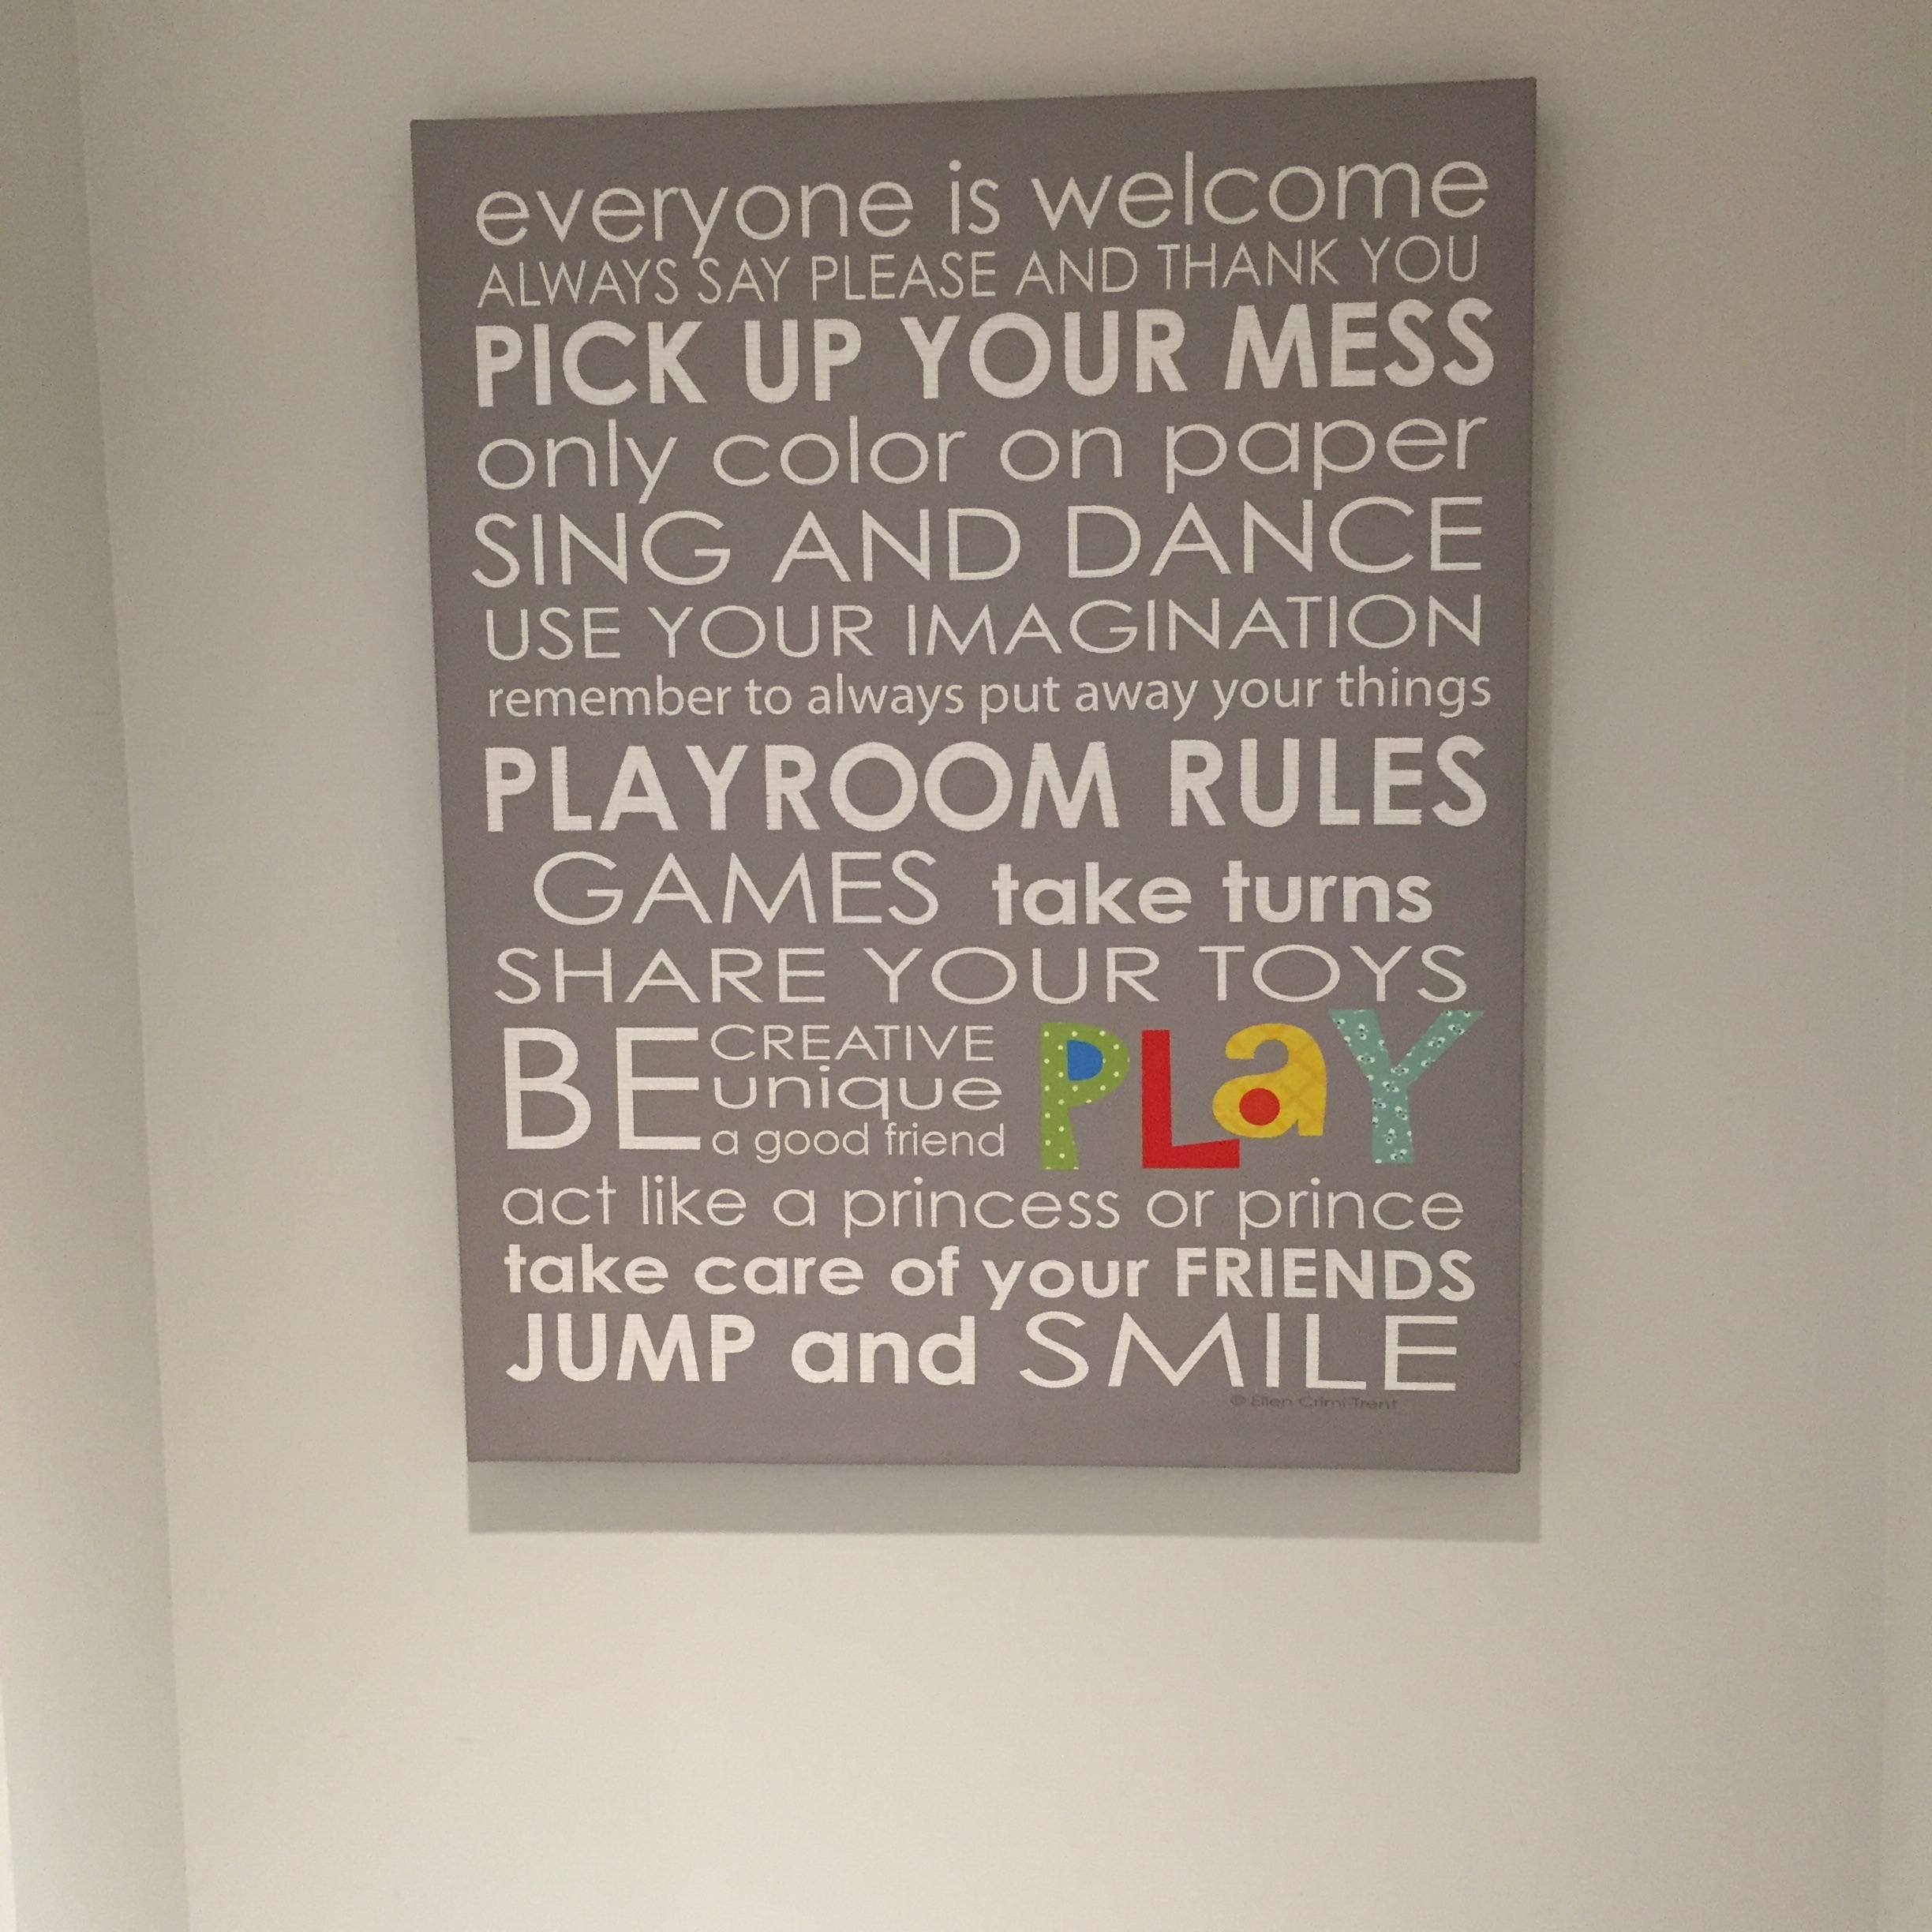 Always remember to play by the rules...